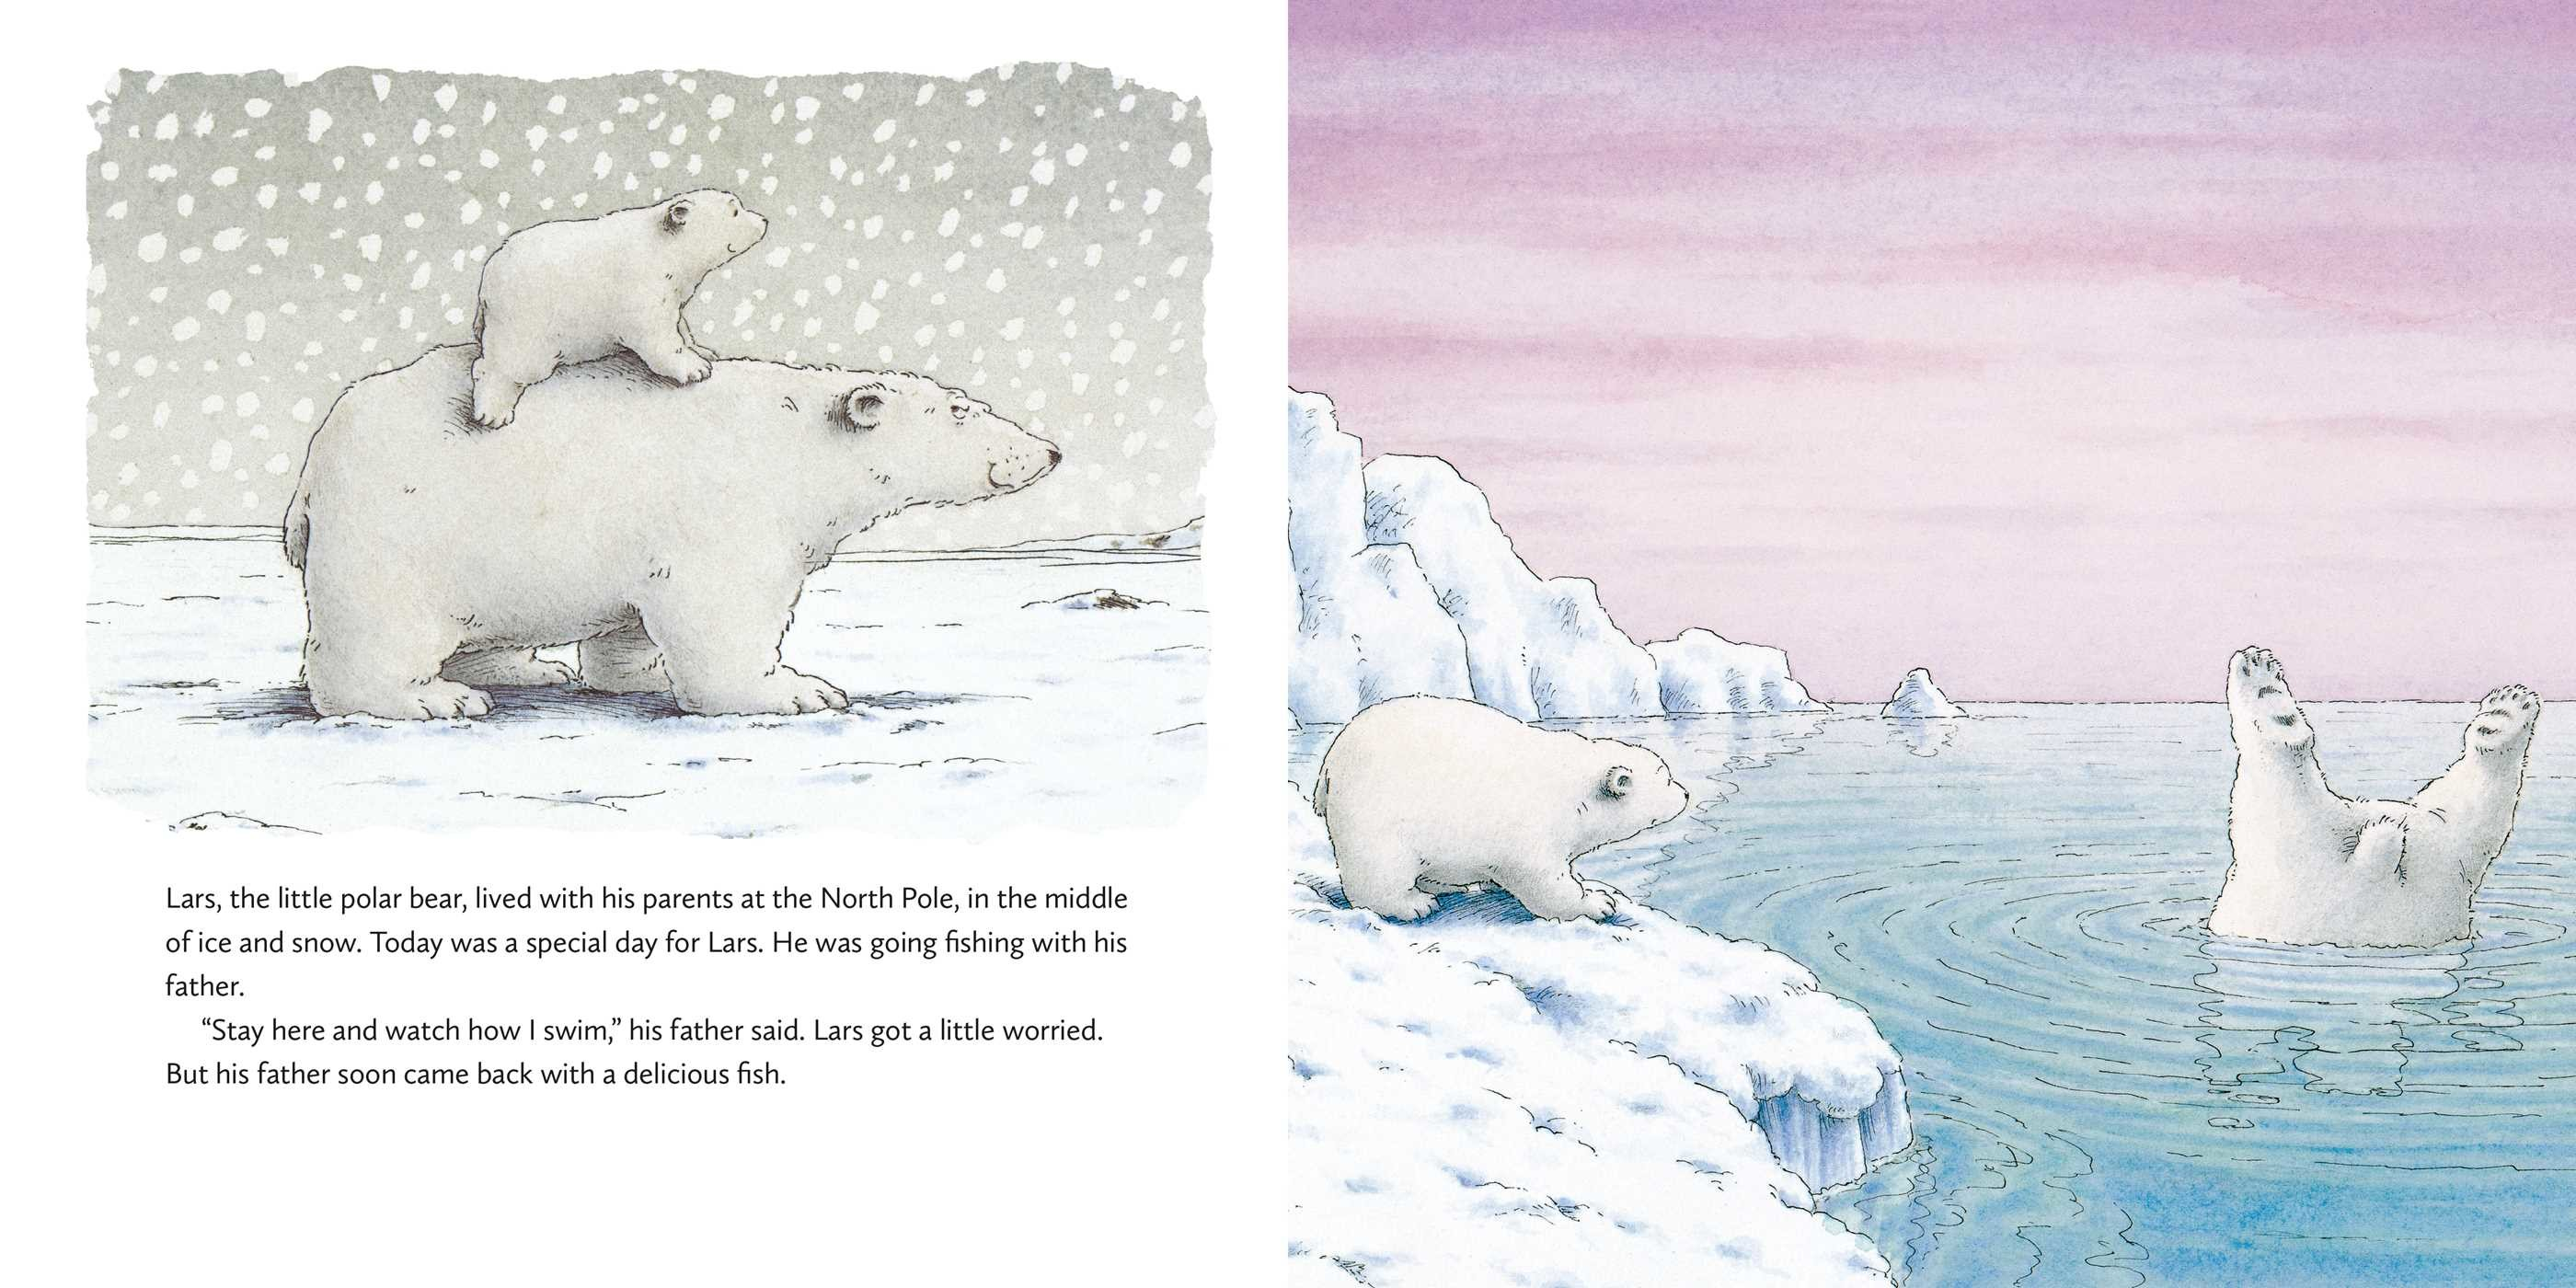 The little polar bear board book 9780735843165.in01